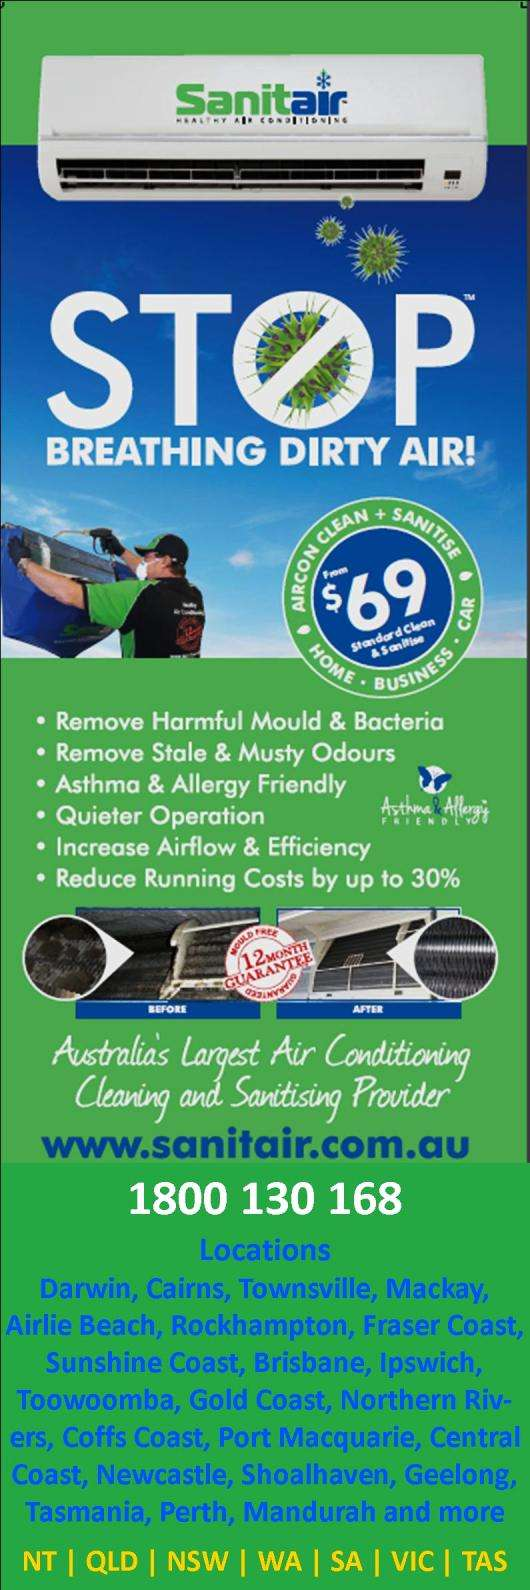 sanitair air conditioning cleaning sanitising air sanitair air conditioning cleaning sanitising promotion